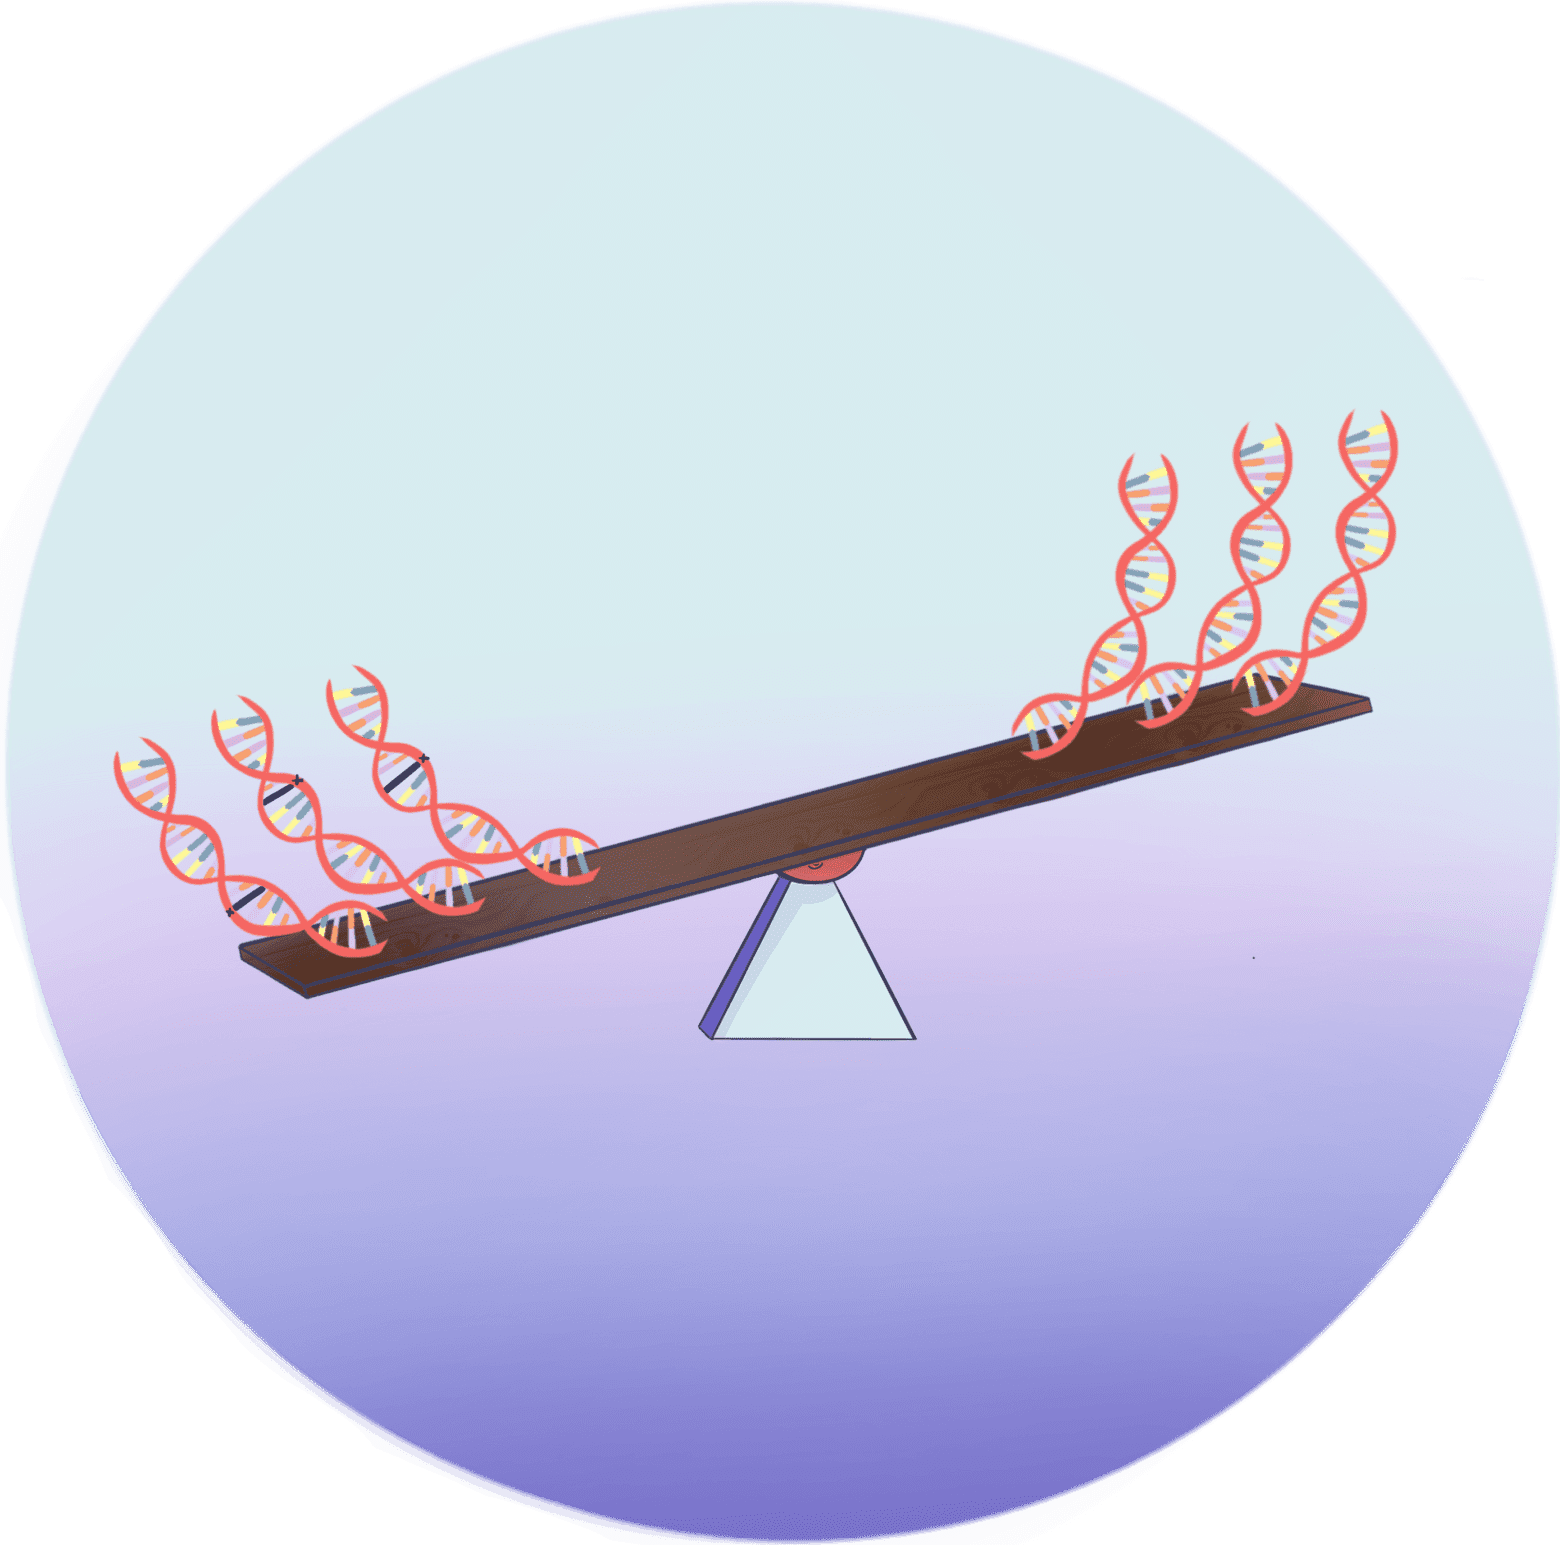 Illustration of DNA on a seesaw. Three strands with mutations tip the seesaw down on one side, indicating tipping the balance into disease